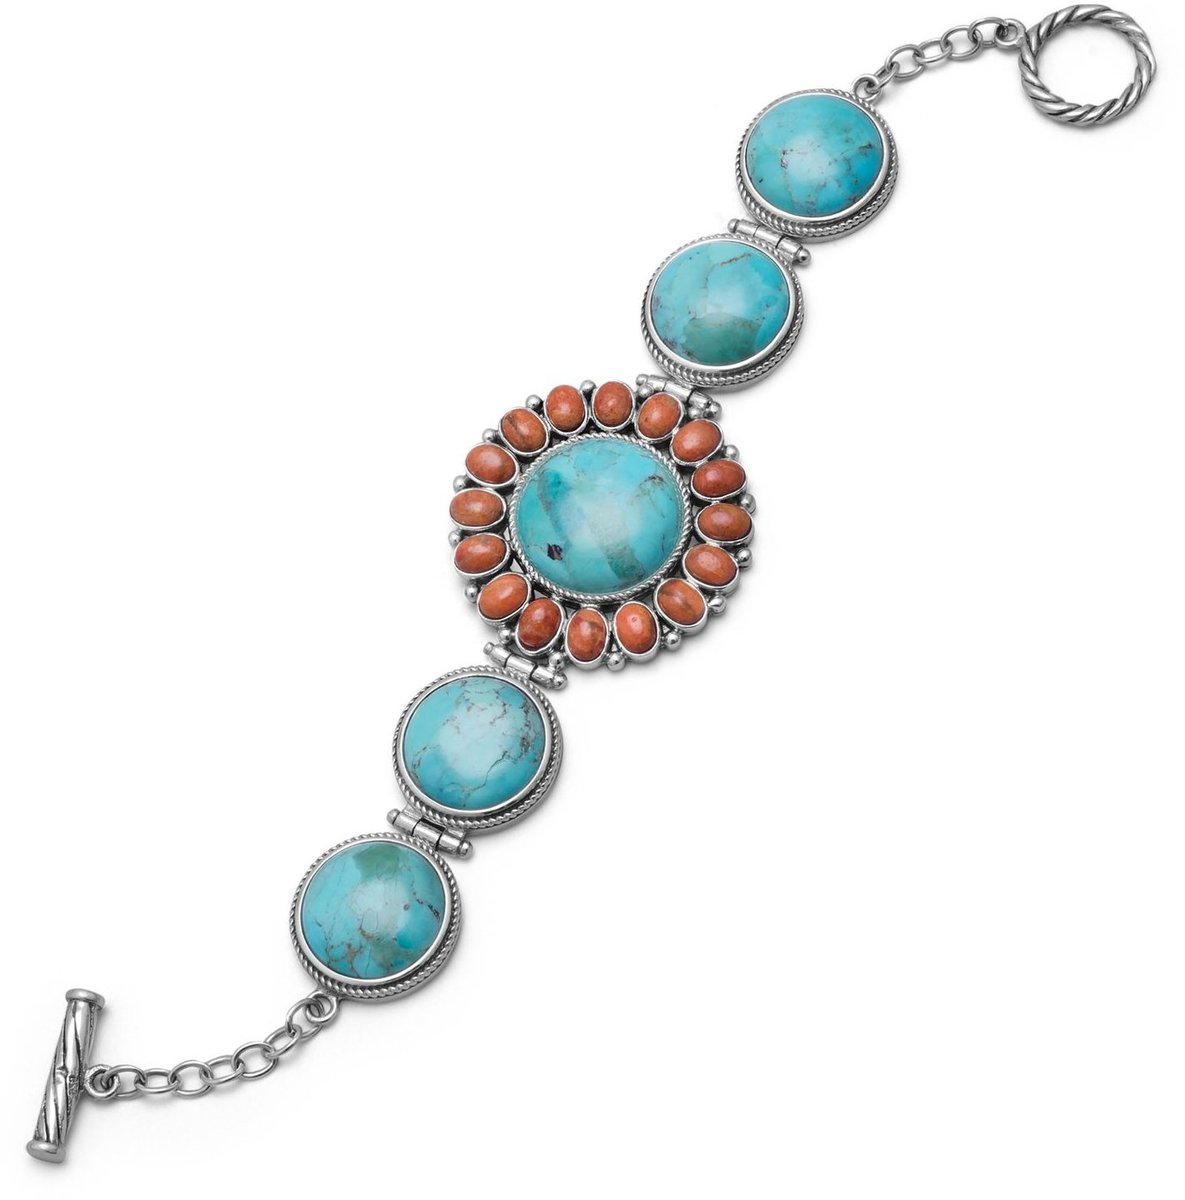 "7.5"" Turquoise and Coral Sunburst Toggle Bracelet 925 Sterling Silver"